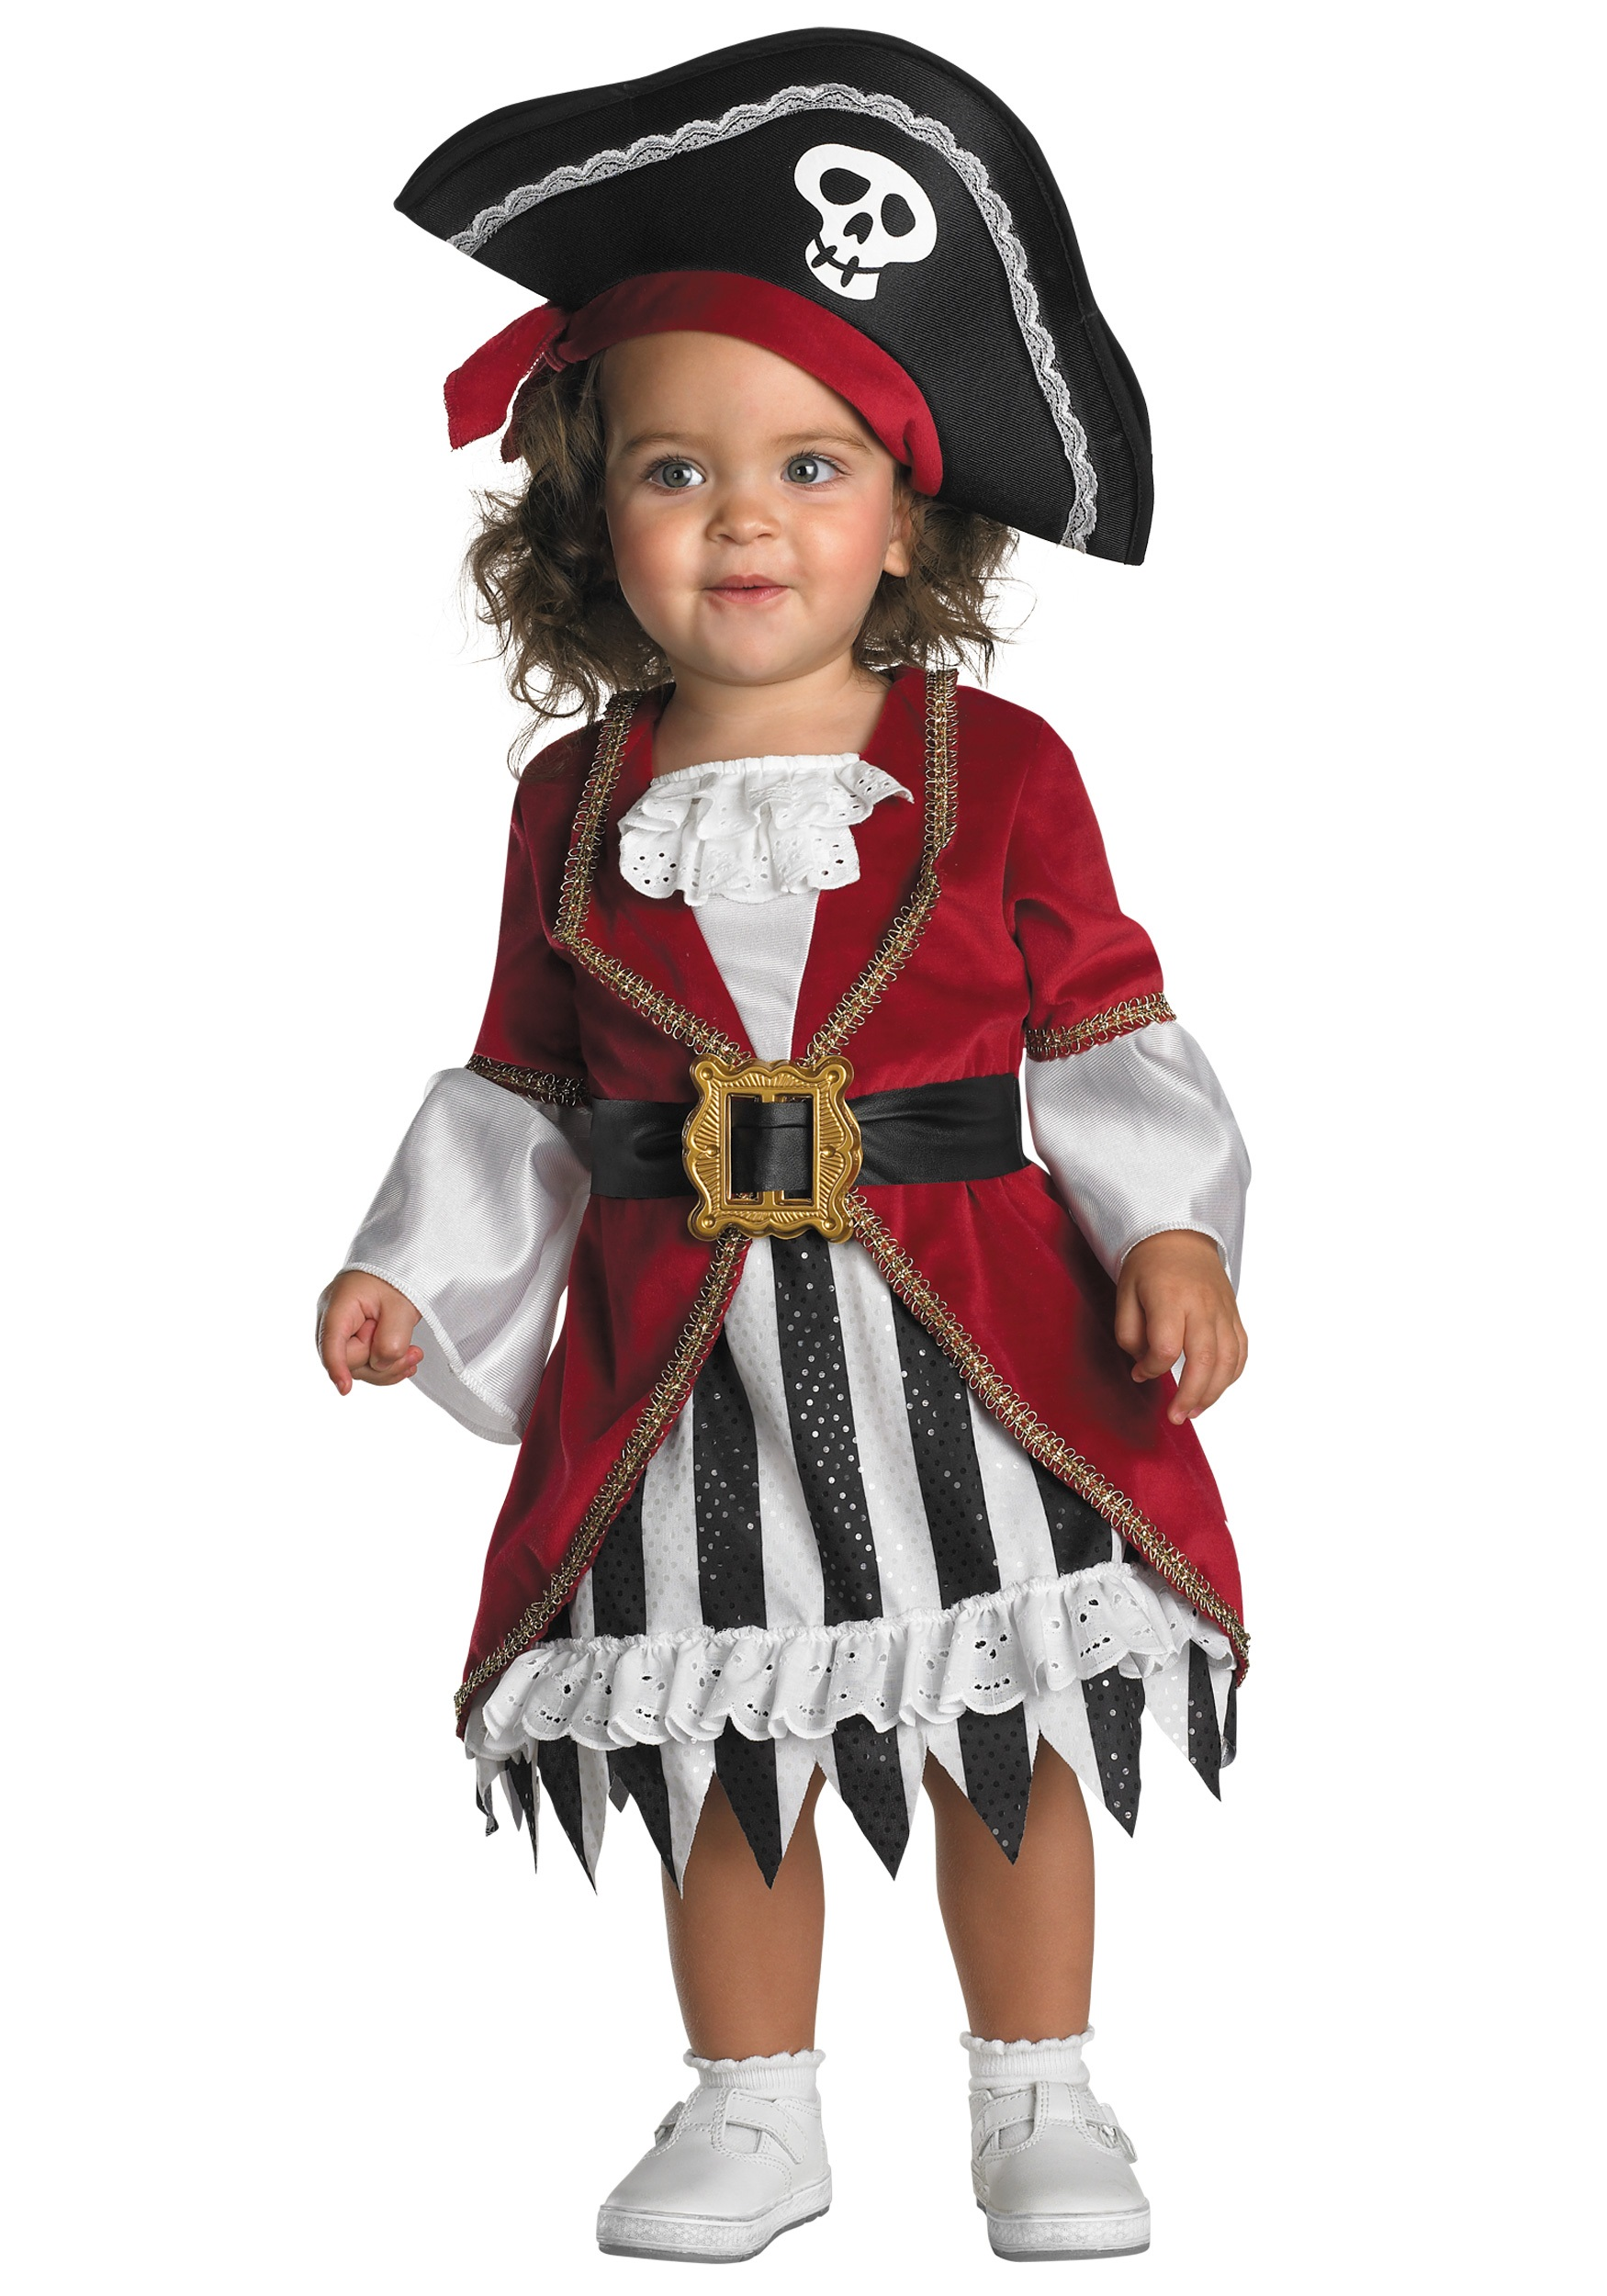 Shop for cute baby Halloween costumes and infant costumes. You'll find baby and bunting costumes, animal-themed infant costumes and so much more. We have everything from animal Baby costumes to Classic to Humorous Baby costumes. Buy your Baby and Infant costumes from the costume authority at Halloween Express.